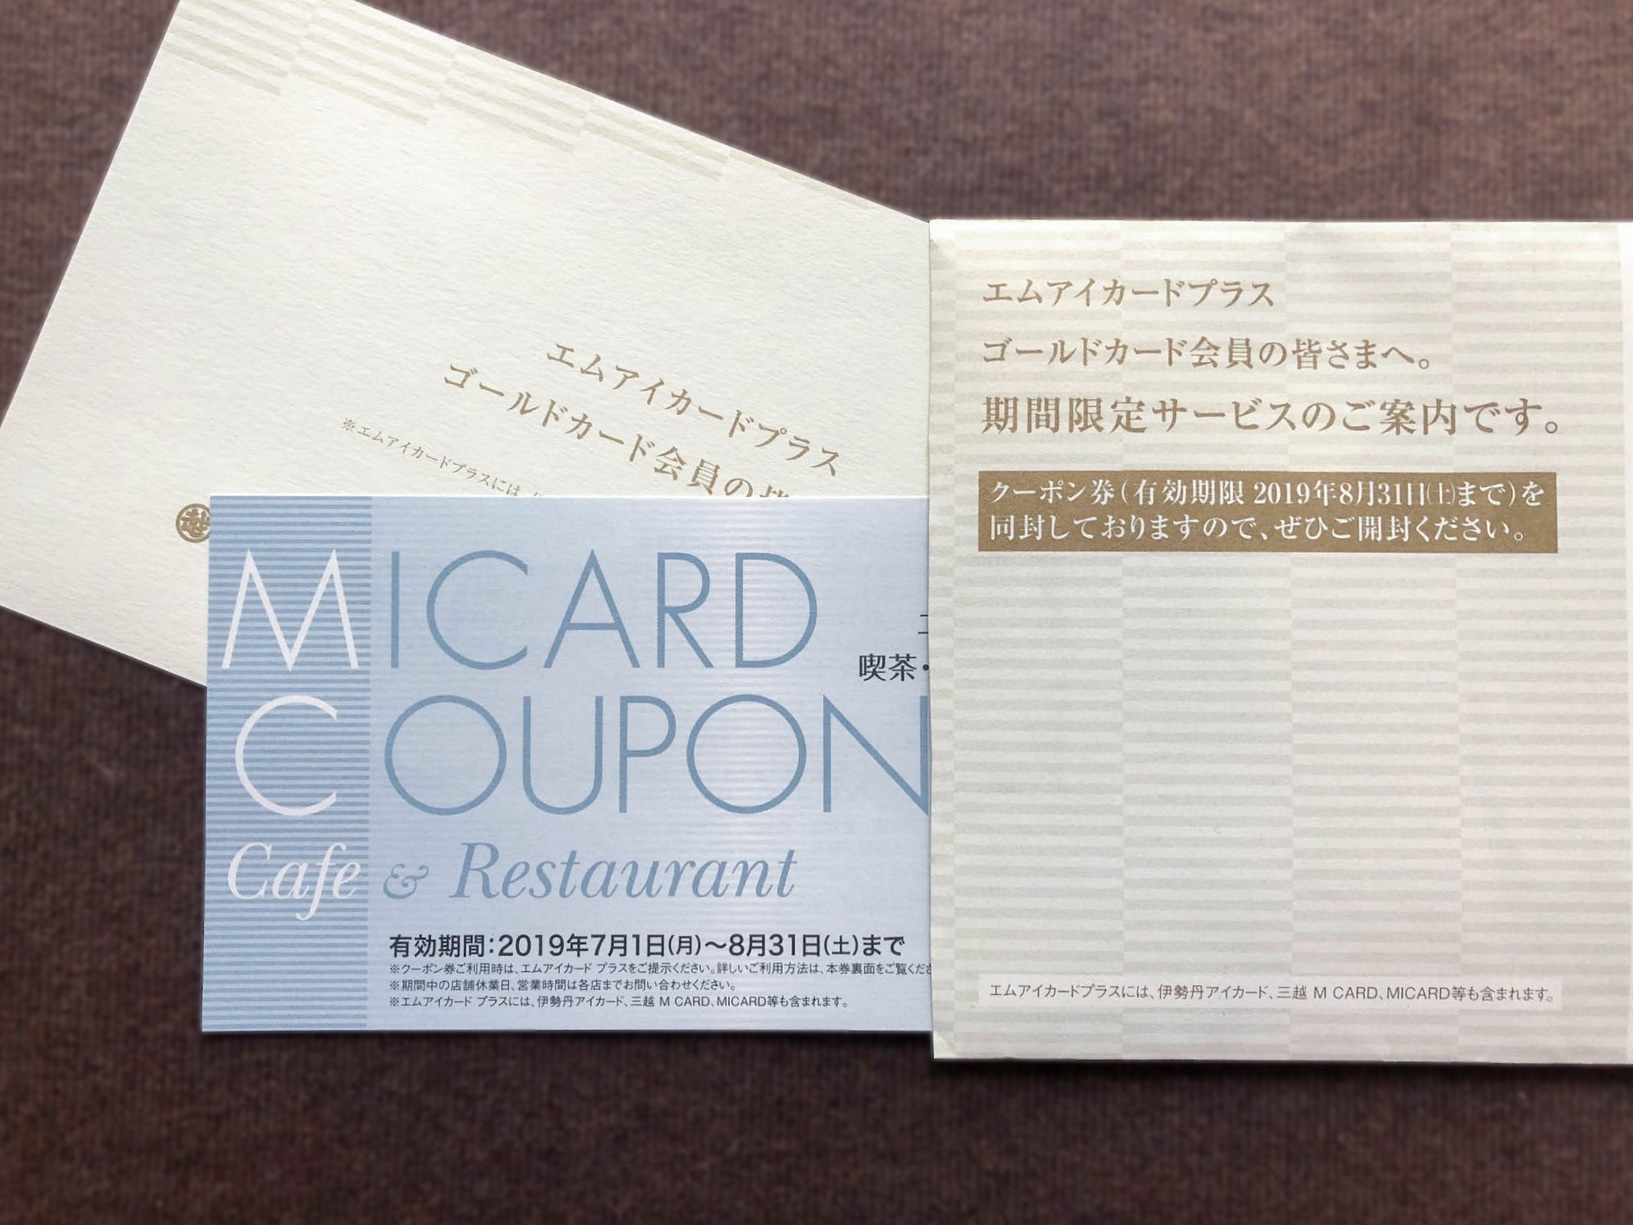 mi gold caed coupon 201907 1